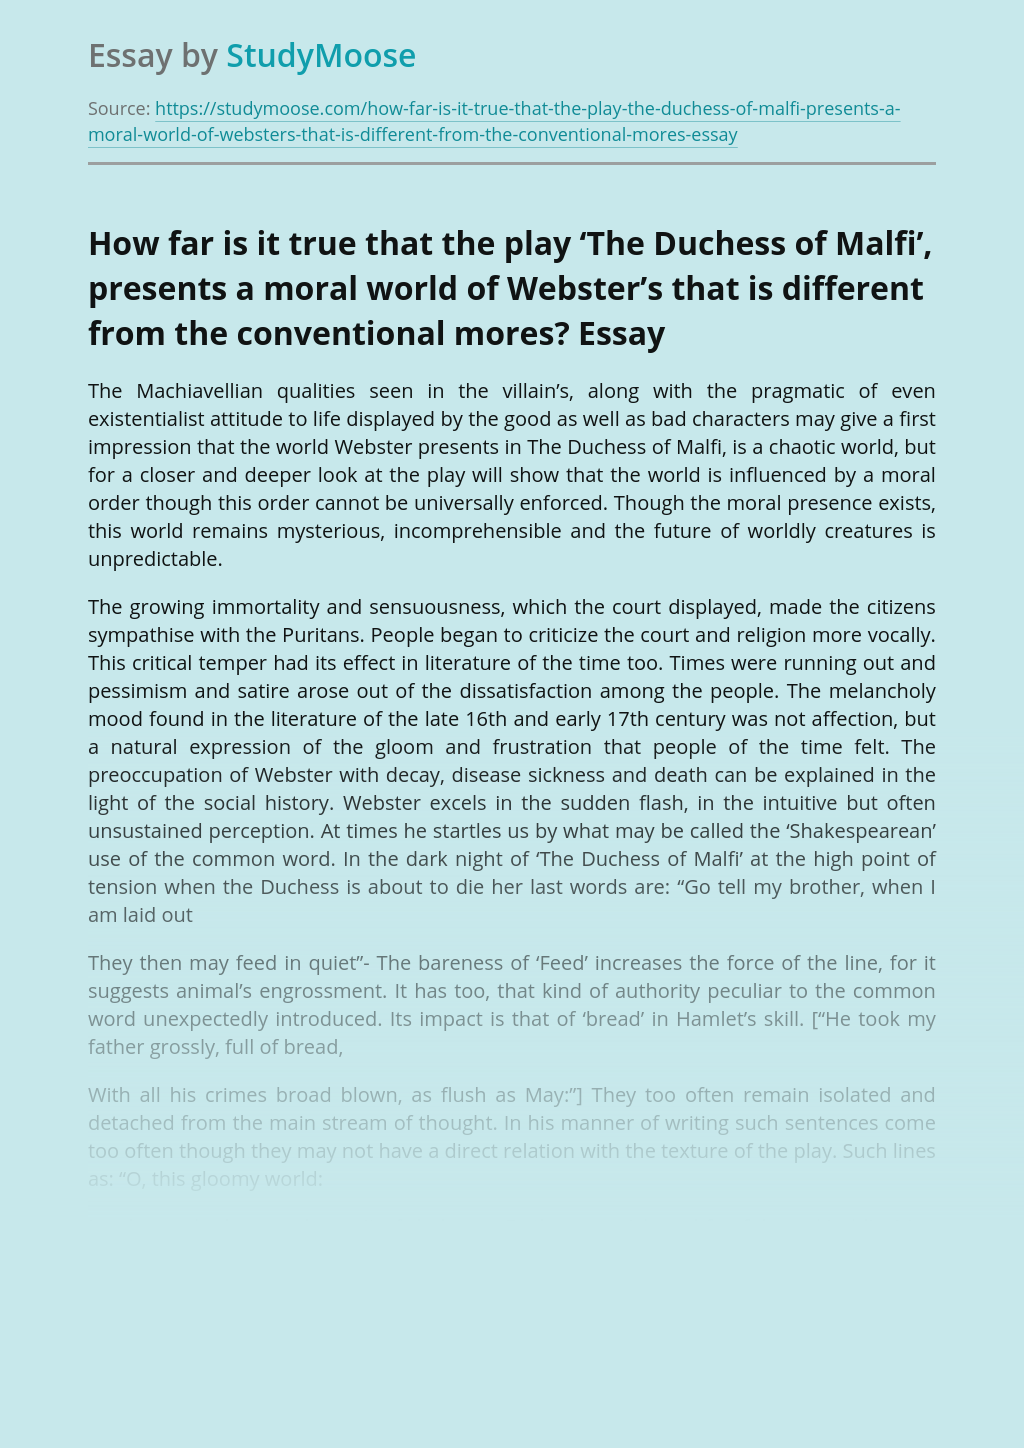 How far is it true that the play 'The Duchess of Malfi', presents a moral world of Webster's that is different from the conventional mores?